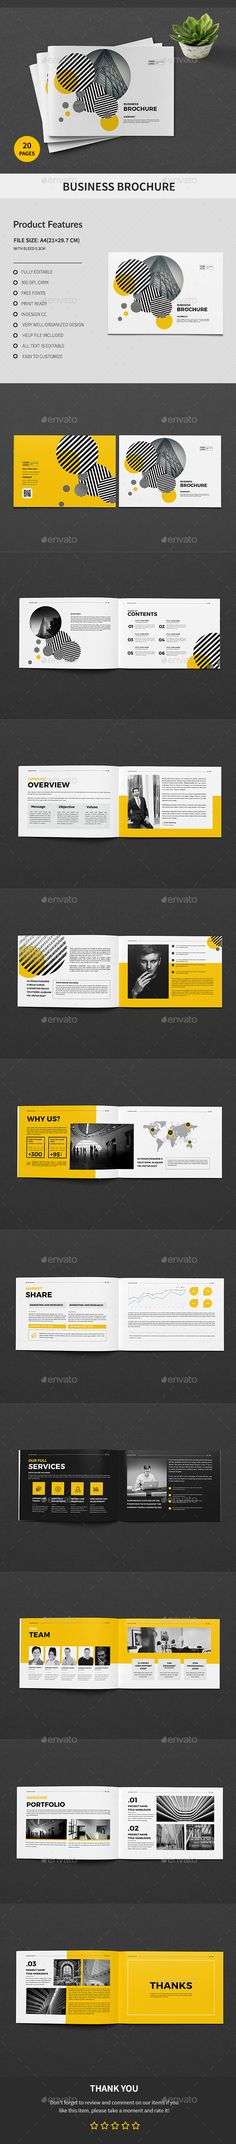 A5 Business Brochure - #Corporate #Brochures Download here: https://graphicriver.net/item/a5-business-brochure/20299089?ref=alena994